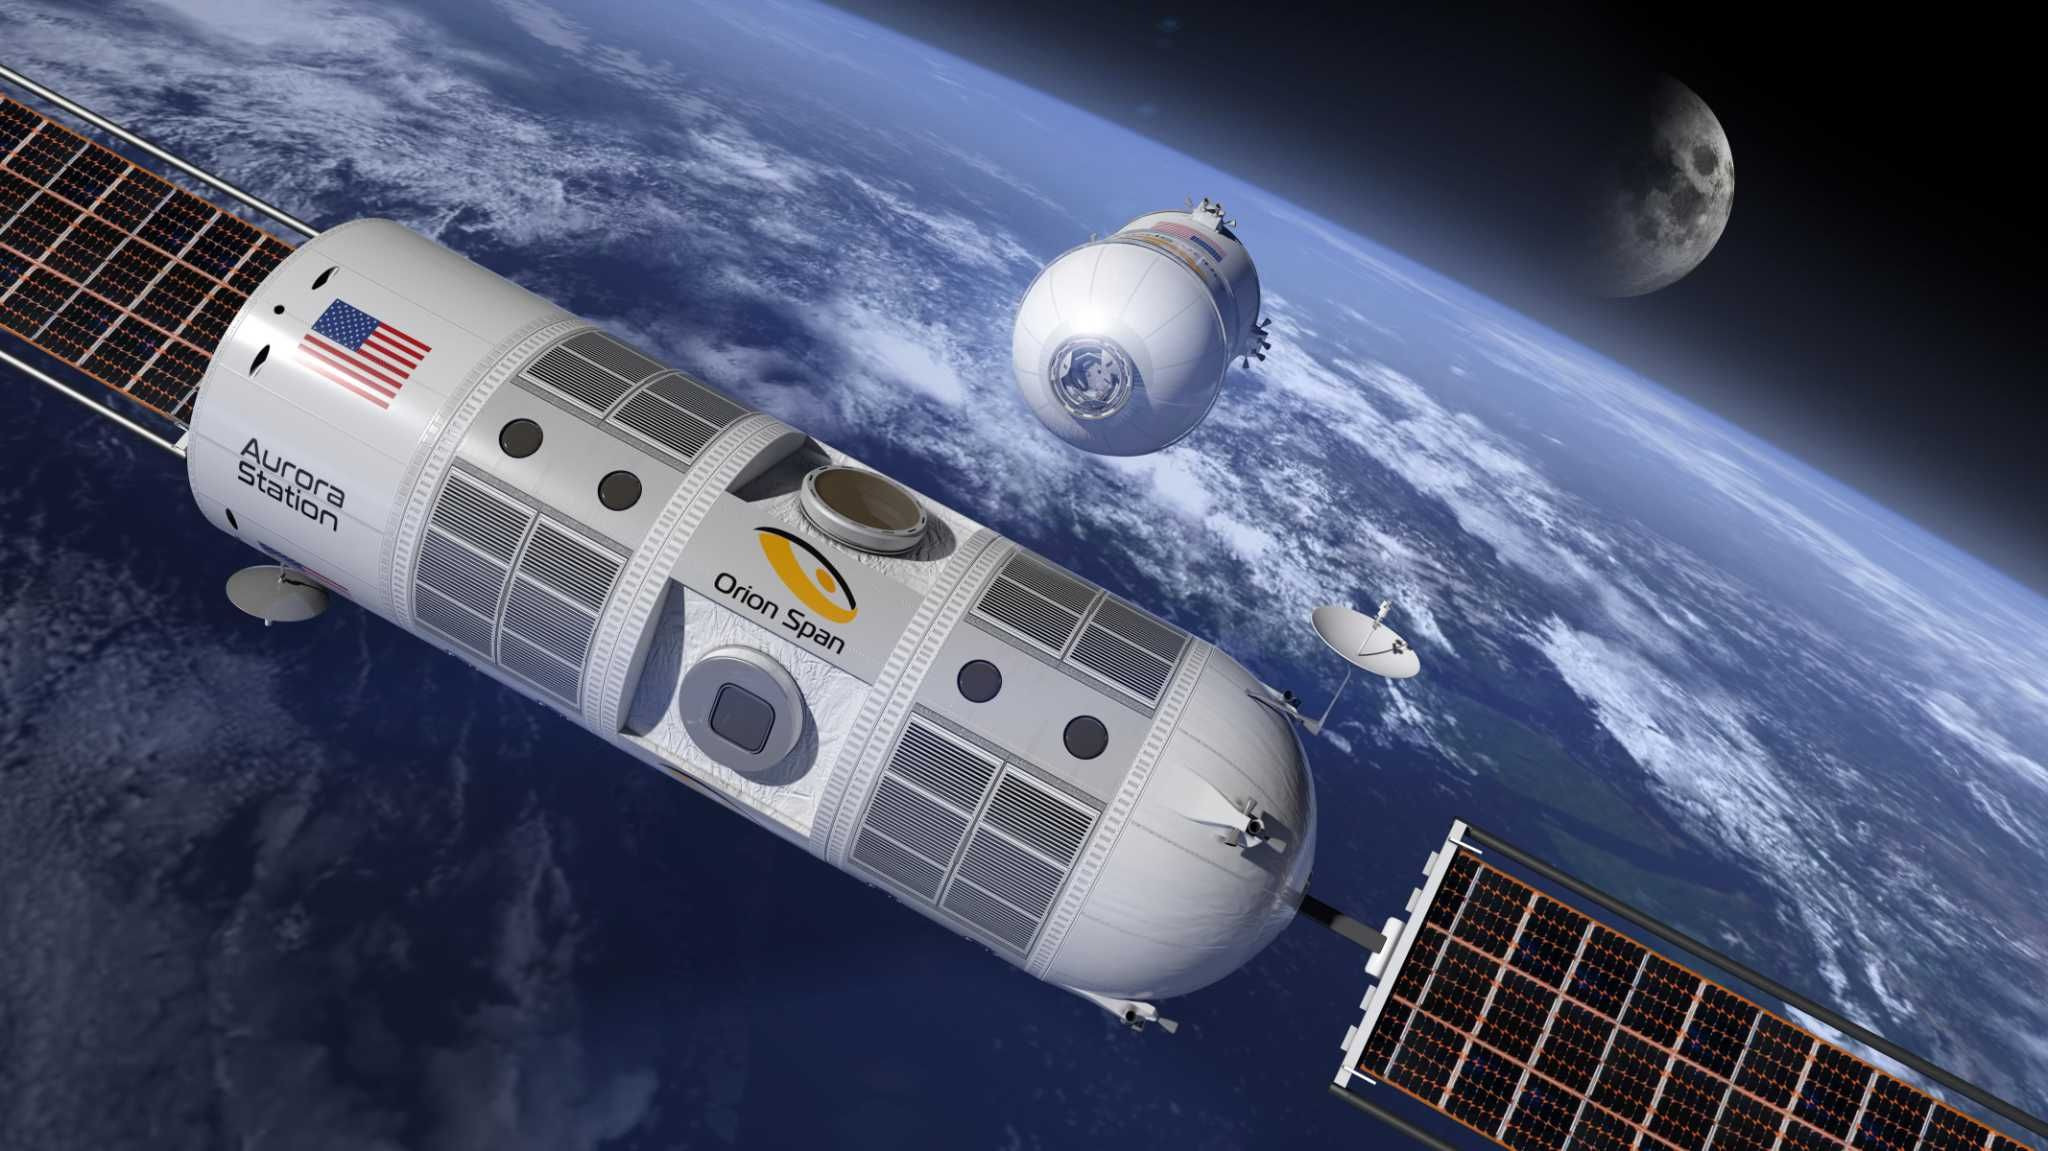 Aurora Station: New Luxury Hotel Will Offer the Best Views of Earth